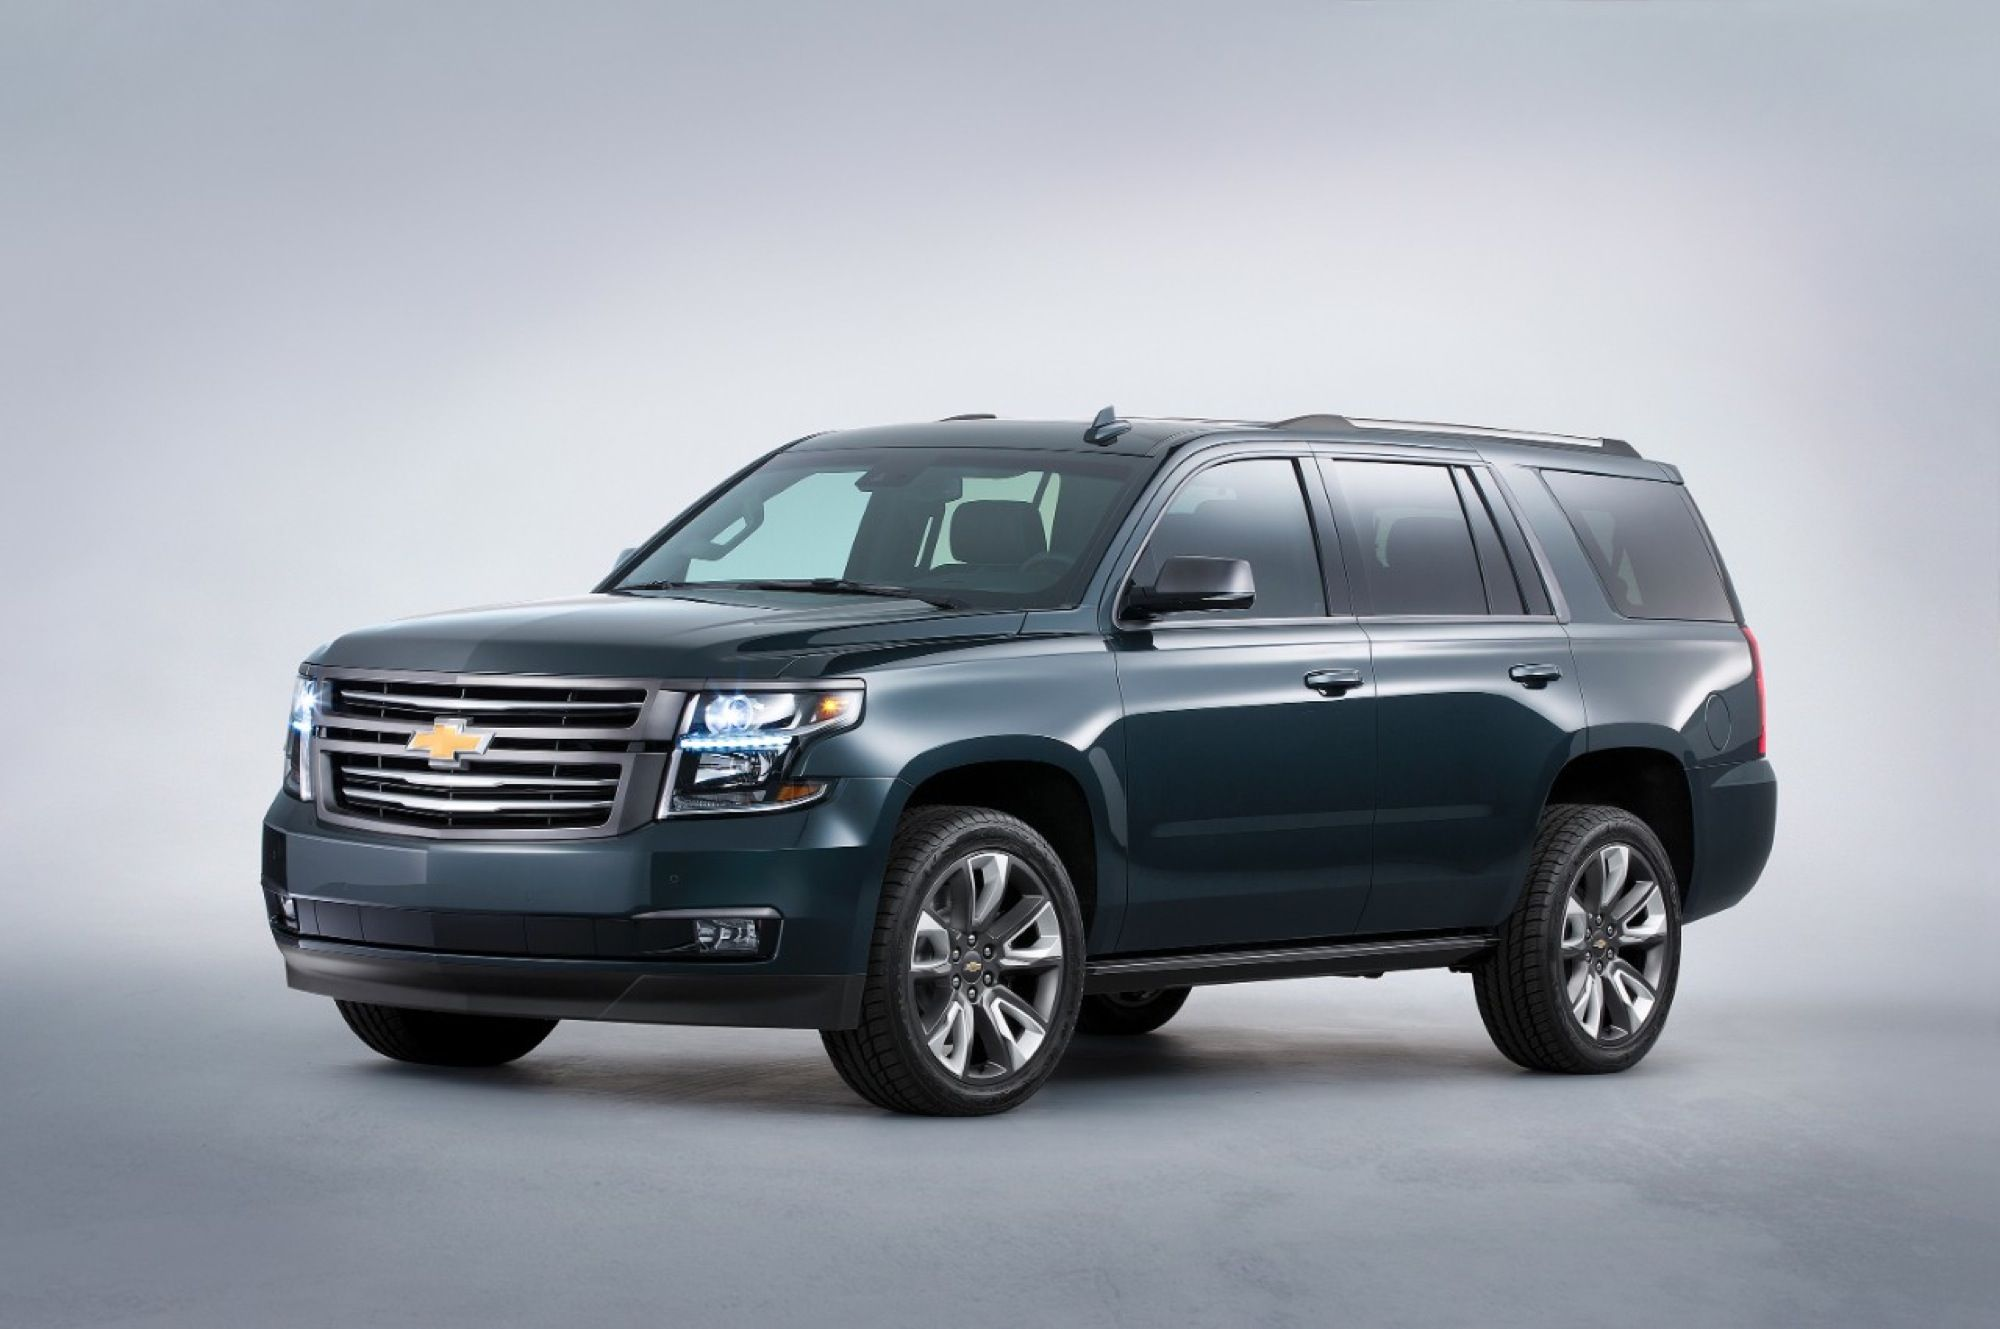 2015 Chevy Tahoe Automotive Design And Latest Car Models Chevrolet Tahoe Chevy Tahoe Best Pickup Truck